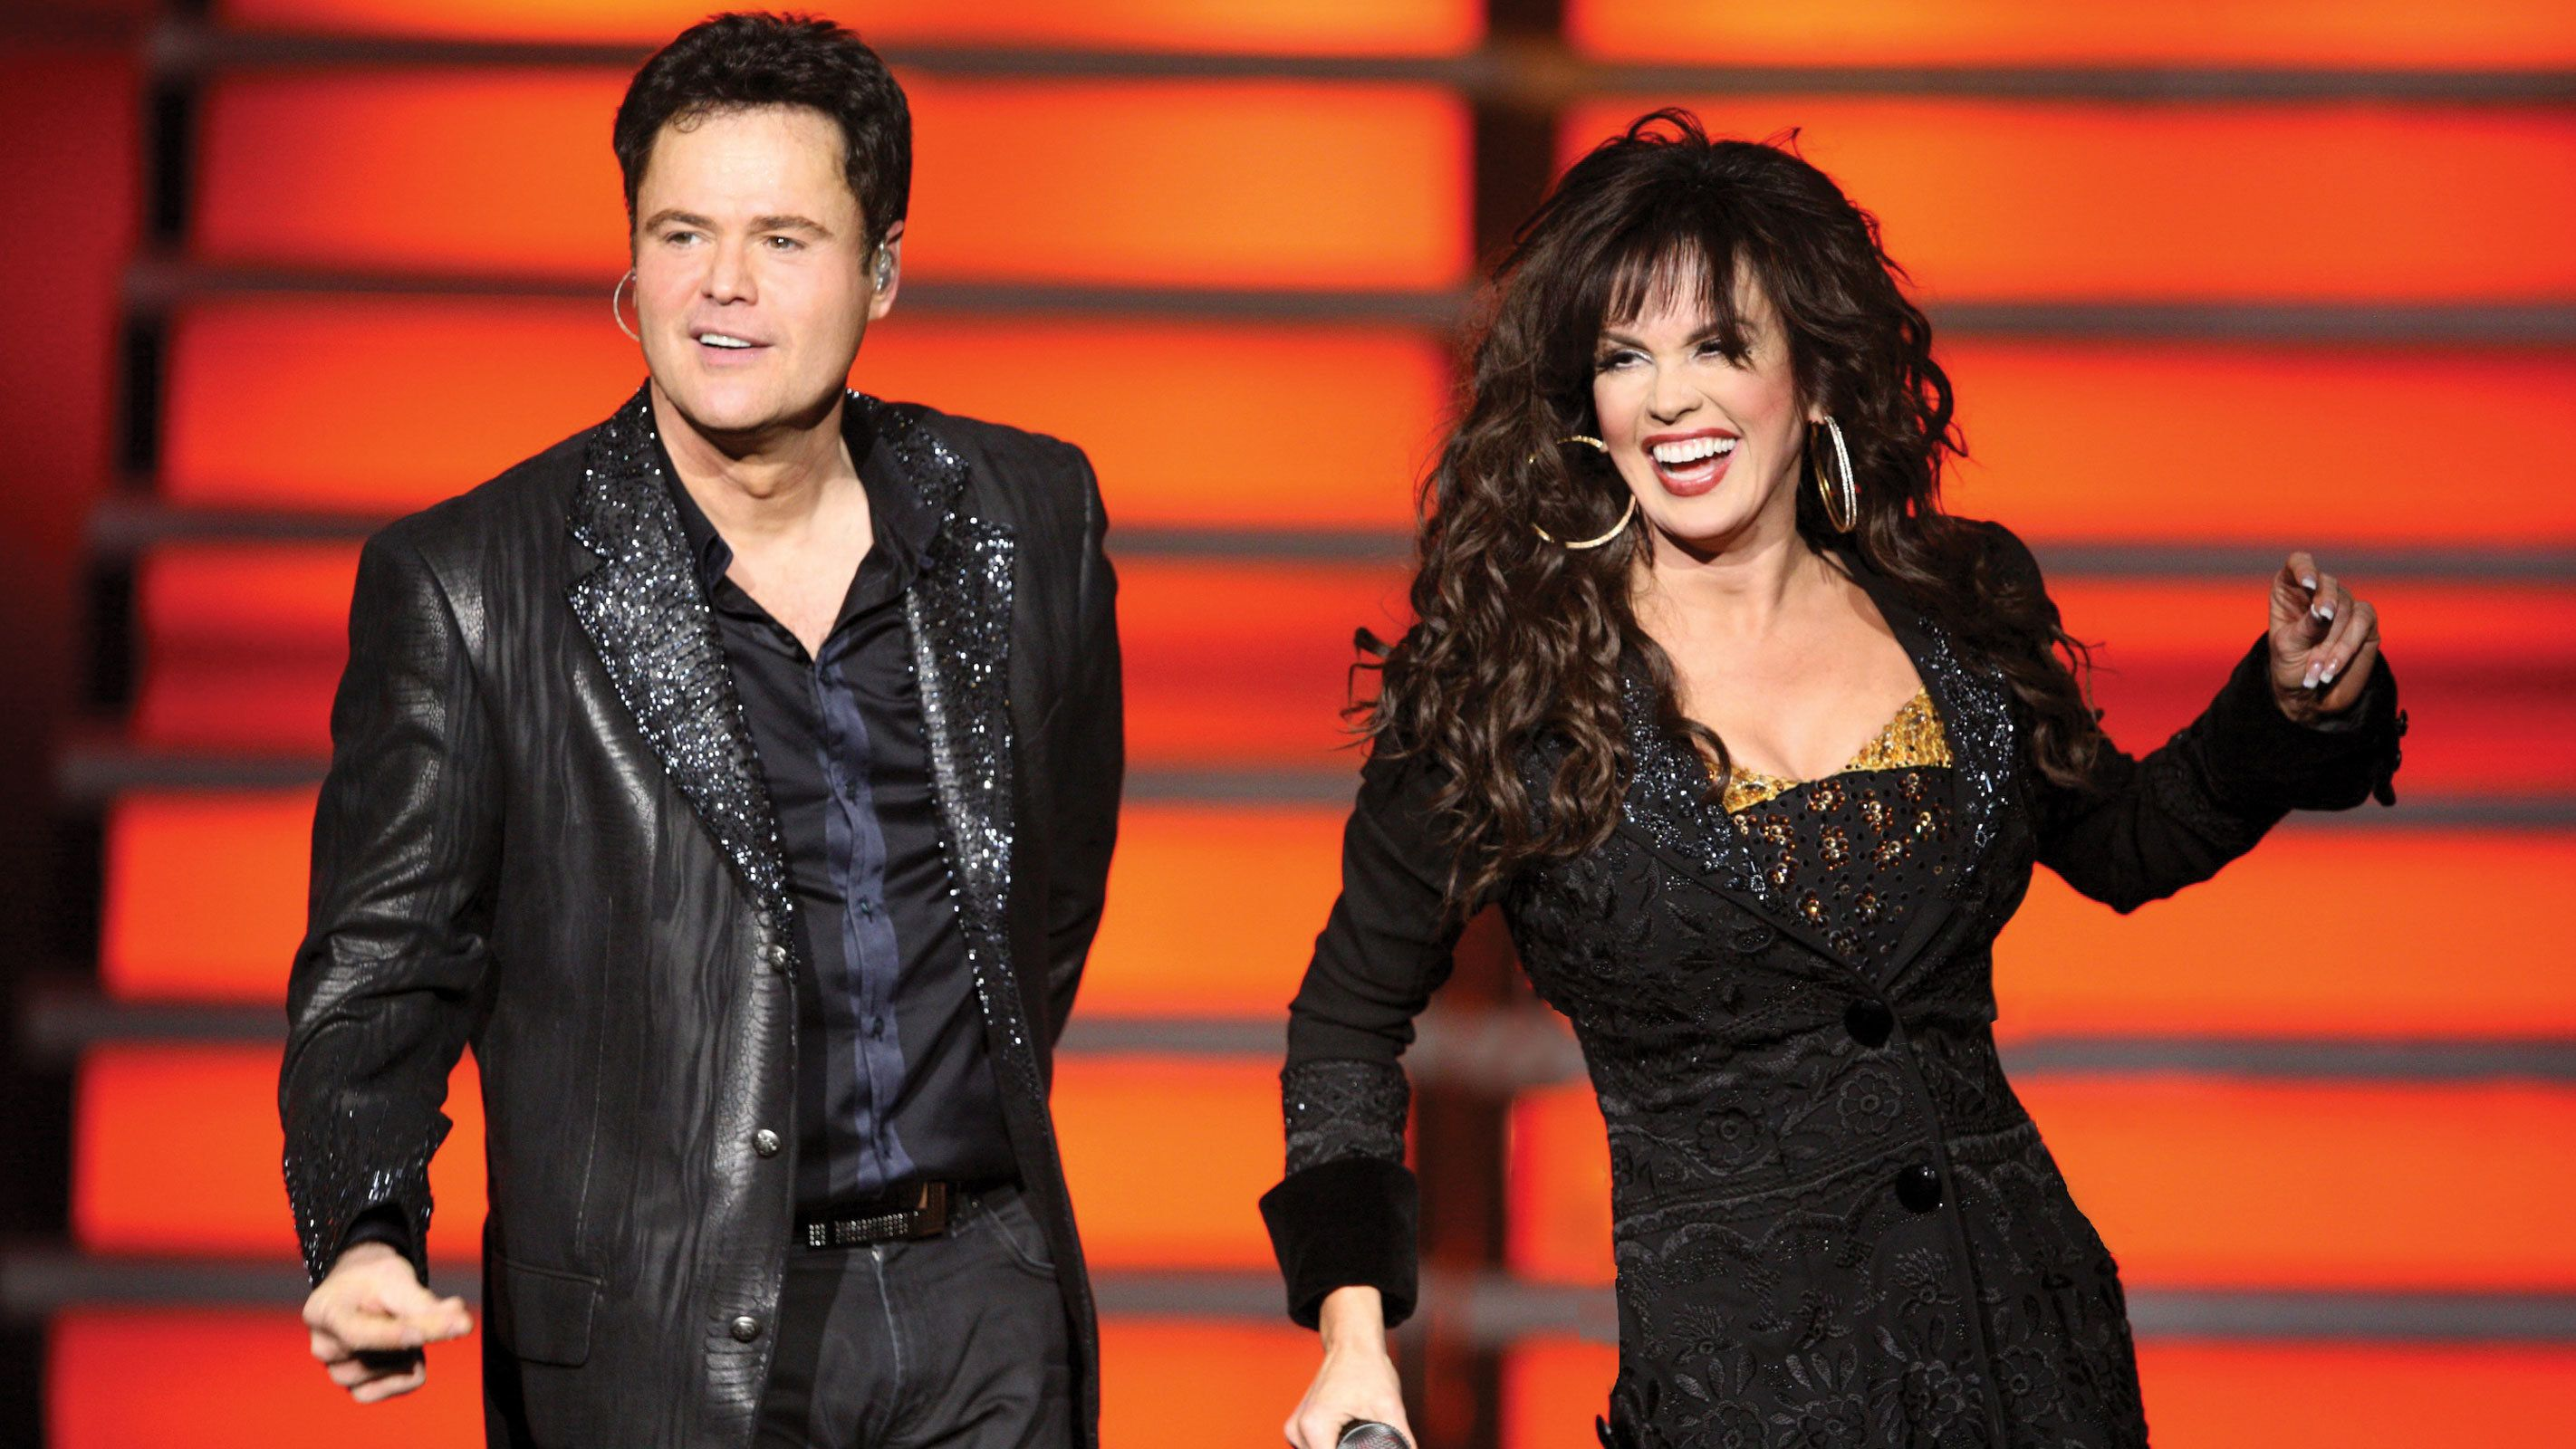 Donnie and Marie singing in a Vegas show